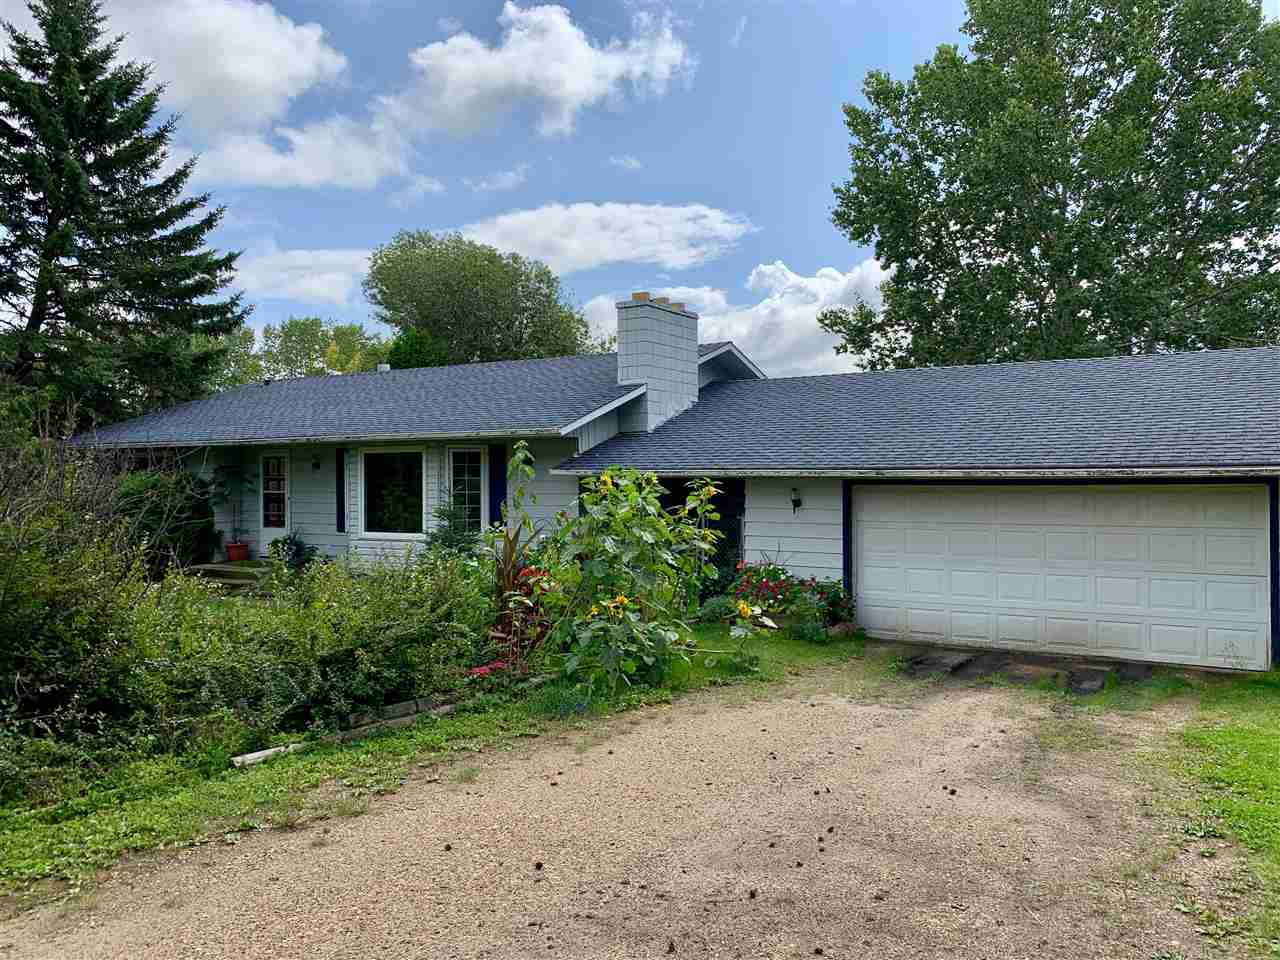 Main Photo: 51 SHULTZ Drive: Rural Sturgeon County House for sale : MLS®# E4203950